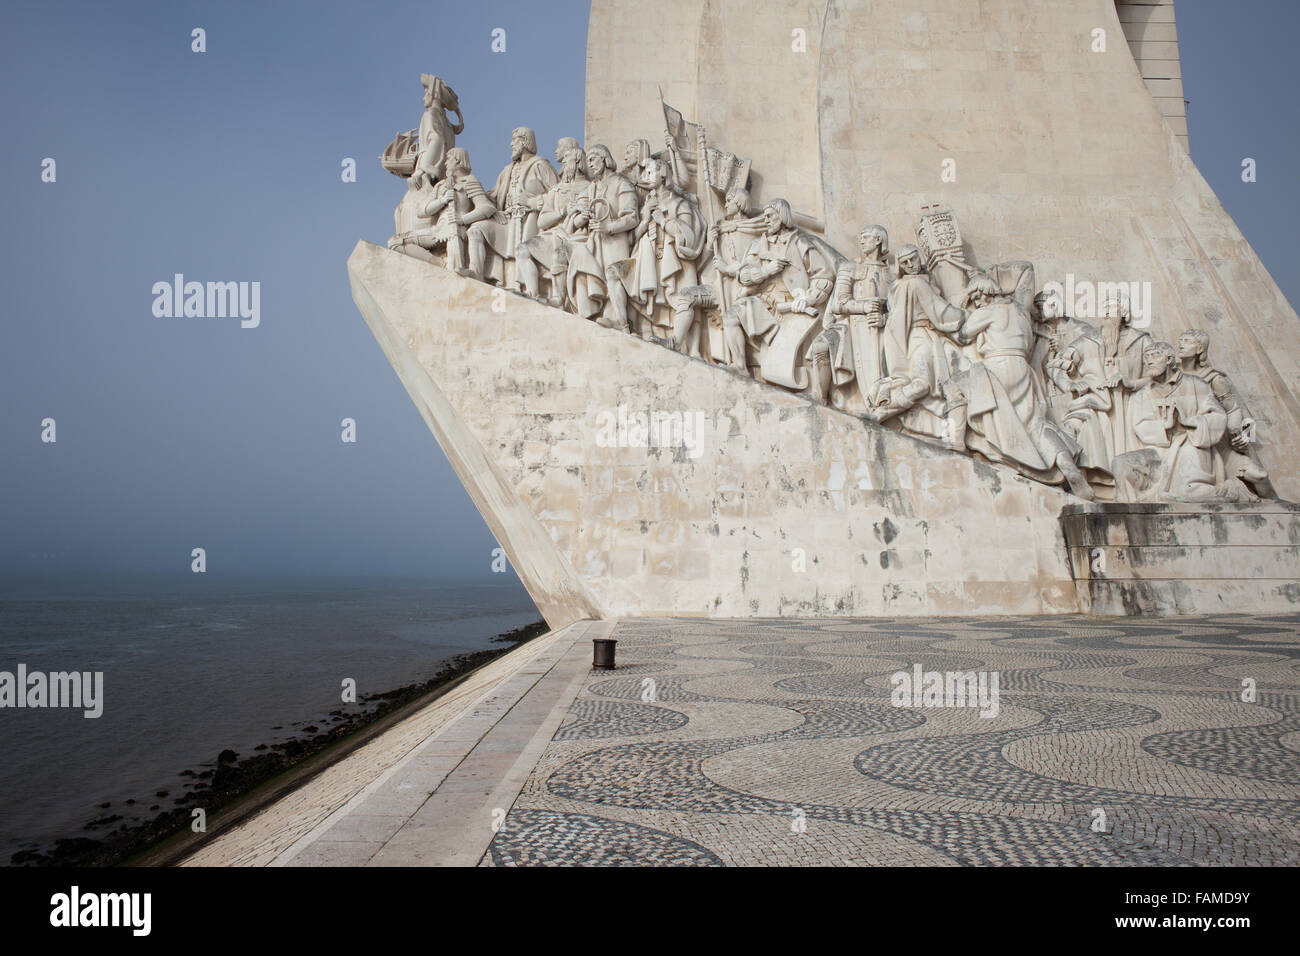 Monument to the Discoveries (Padrao dos Descobrimentos) in Lisbon, Portugal - Stock Image